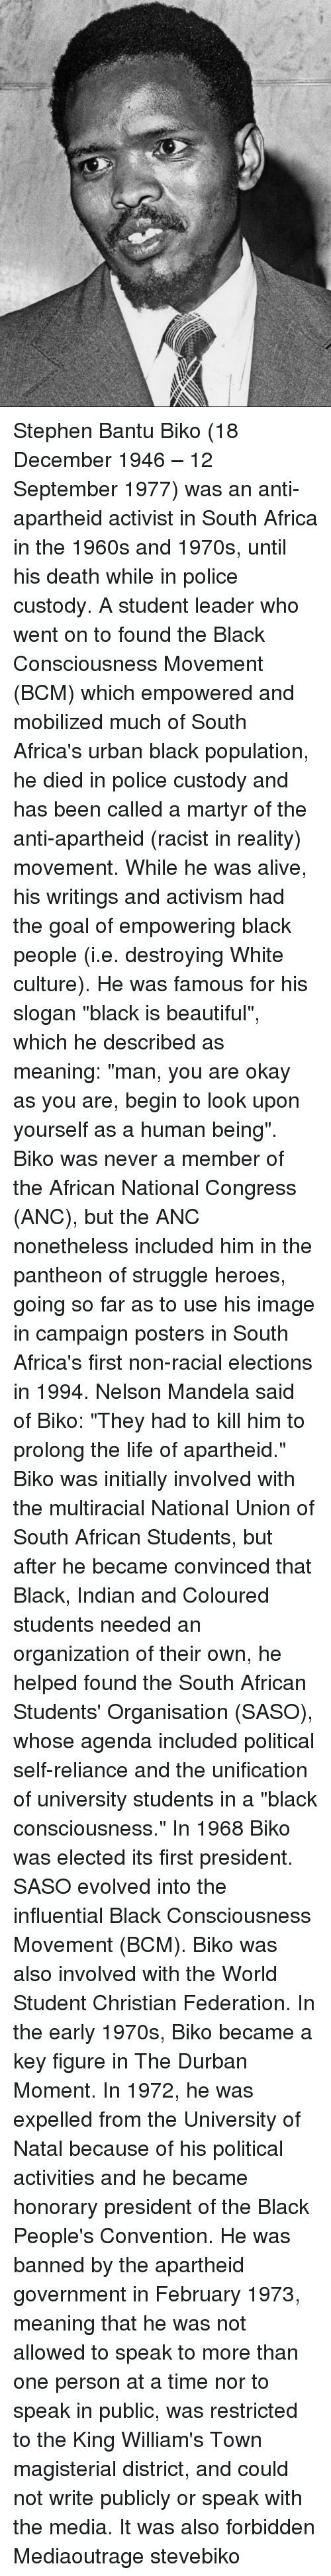 biographies of nelson mandela and steven biko south african activists Gallery: south africa remembers steve biko anti-apartheid activist steve bantu biko of south africa nelson mandela at the gravesite of.